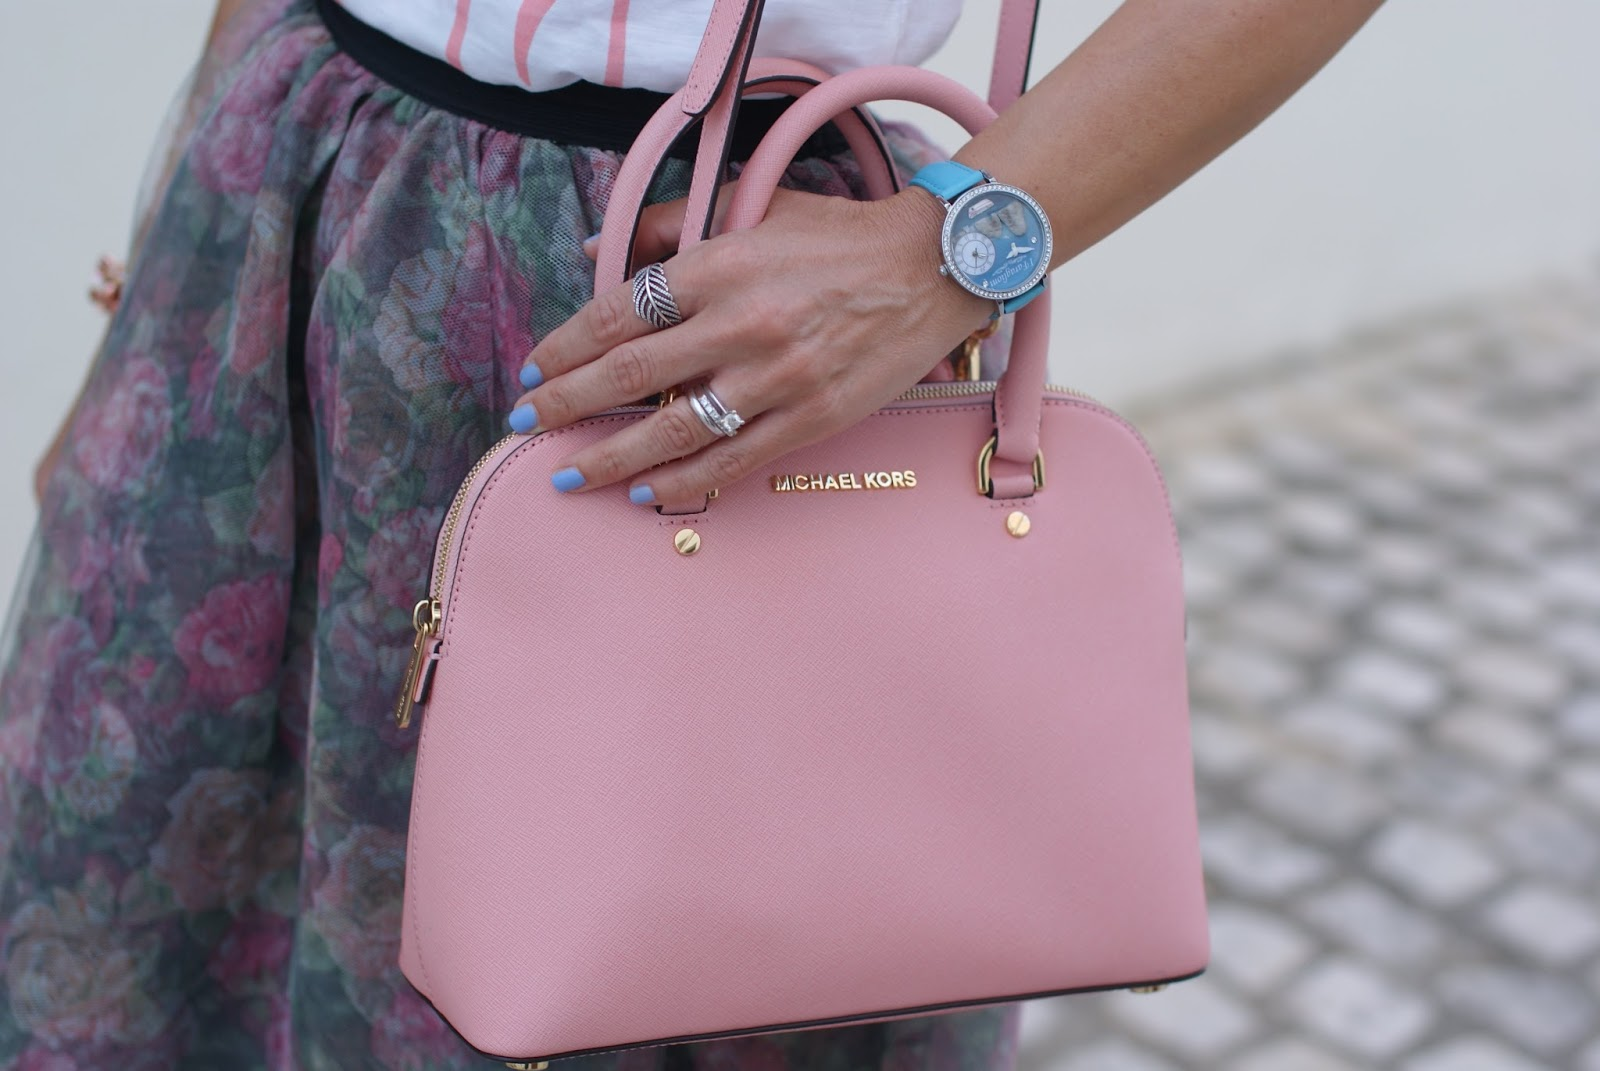 Capri watch from Luca Barra and Michael Kors pink Cindy bag on Fashion and Cookies fashion blog